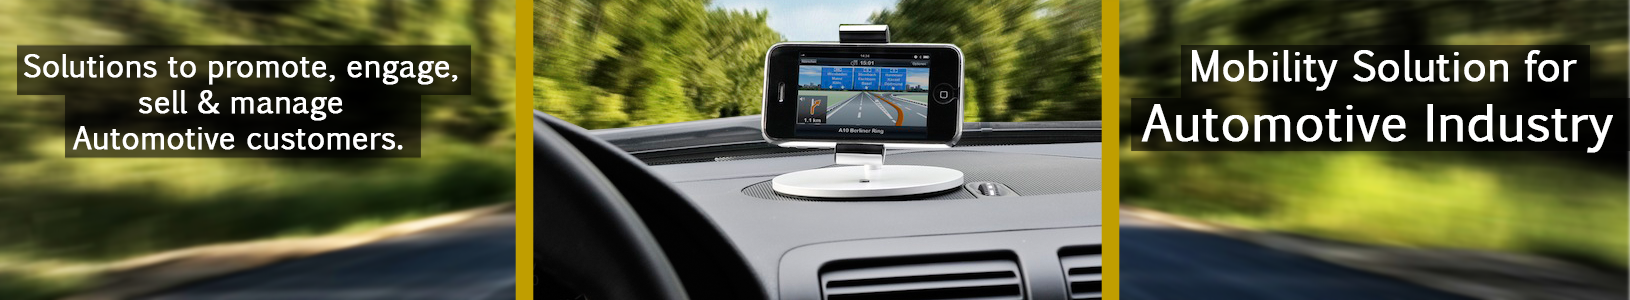 mobilility-solution-for-automobile